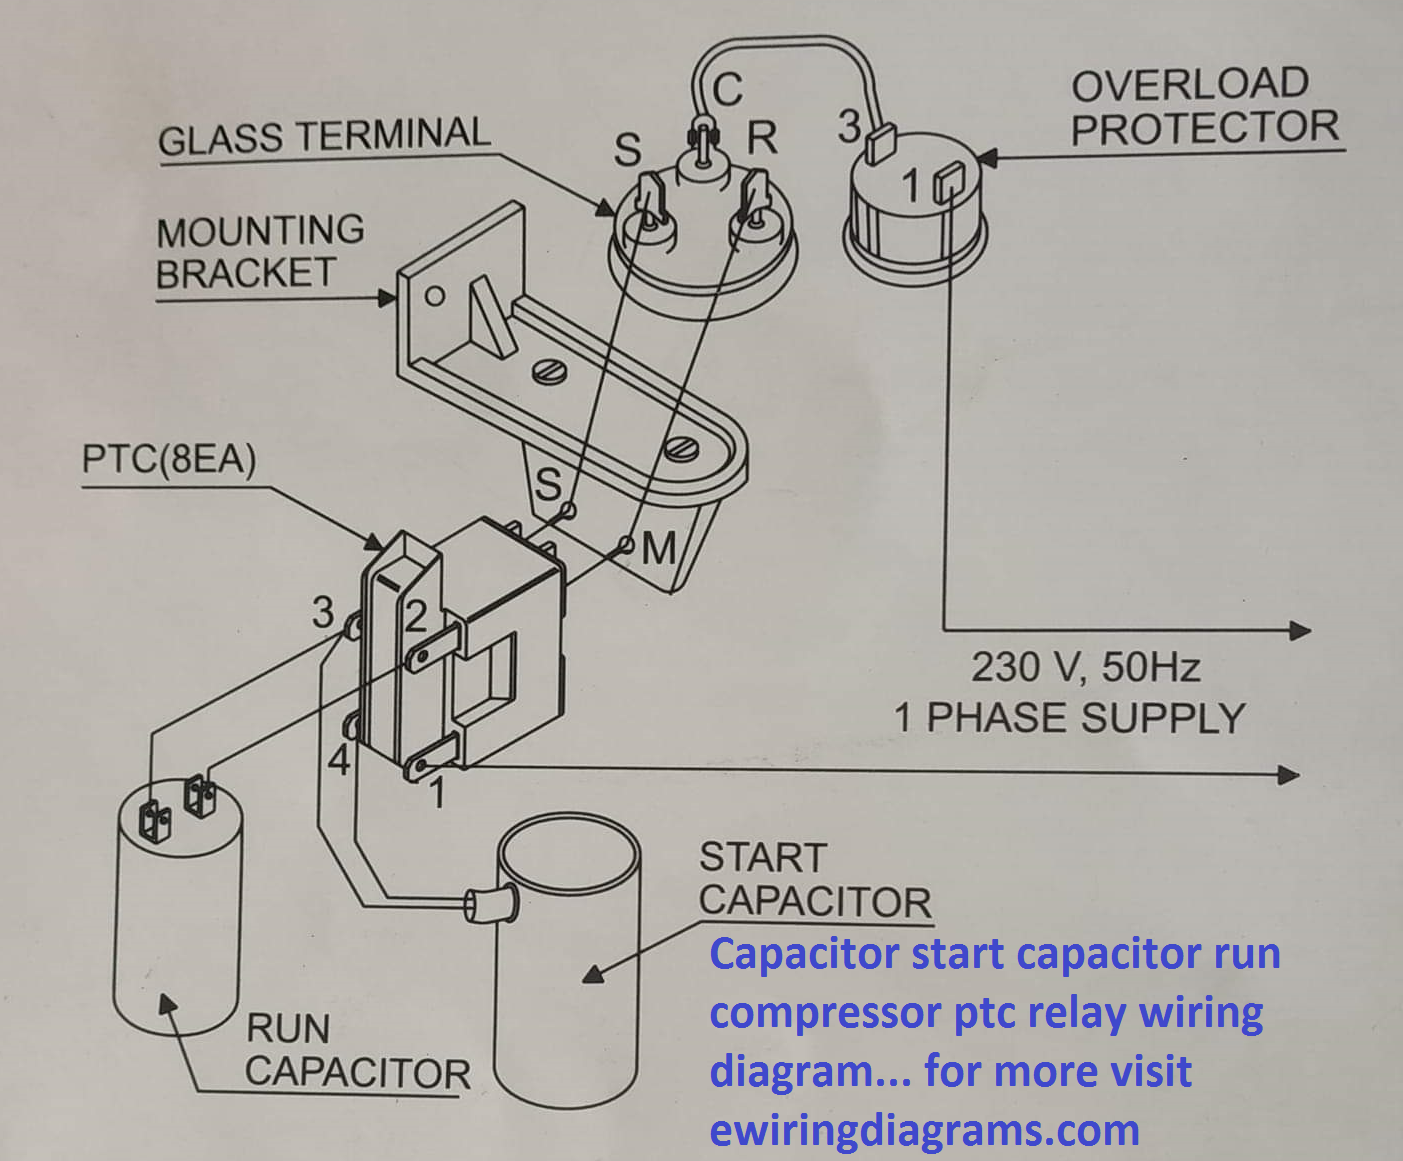 Capacitor Start Capacitor Run Compressor PTC Relay Wiring Diagram |  Electrical Wiring Diagrams Platform | Refrigerator Relay Wiring Diagram |  | Electrical Wiring Diagrams Platform